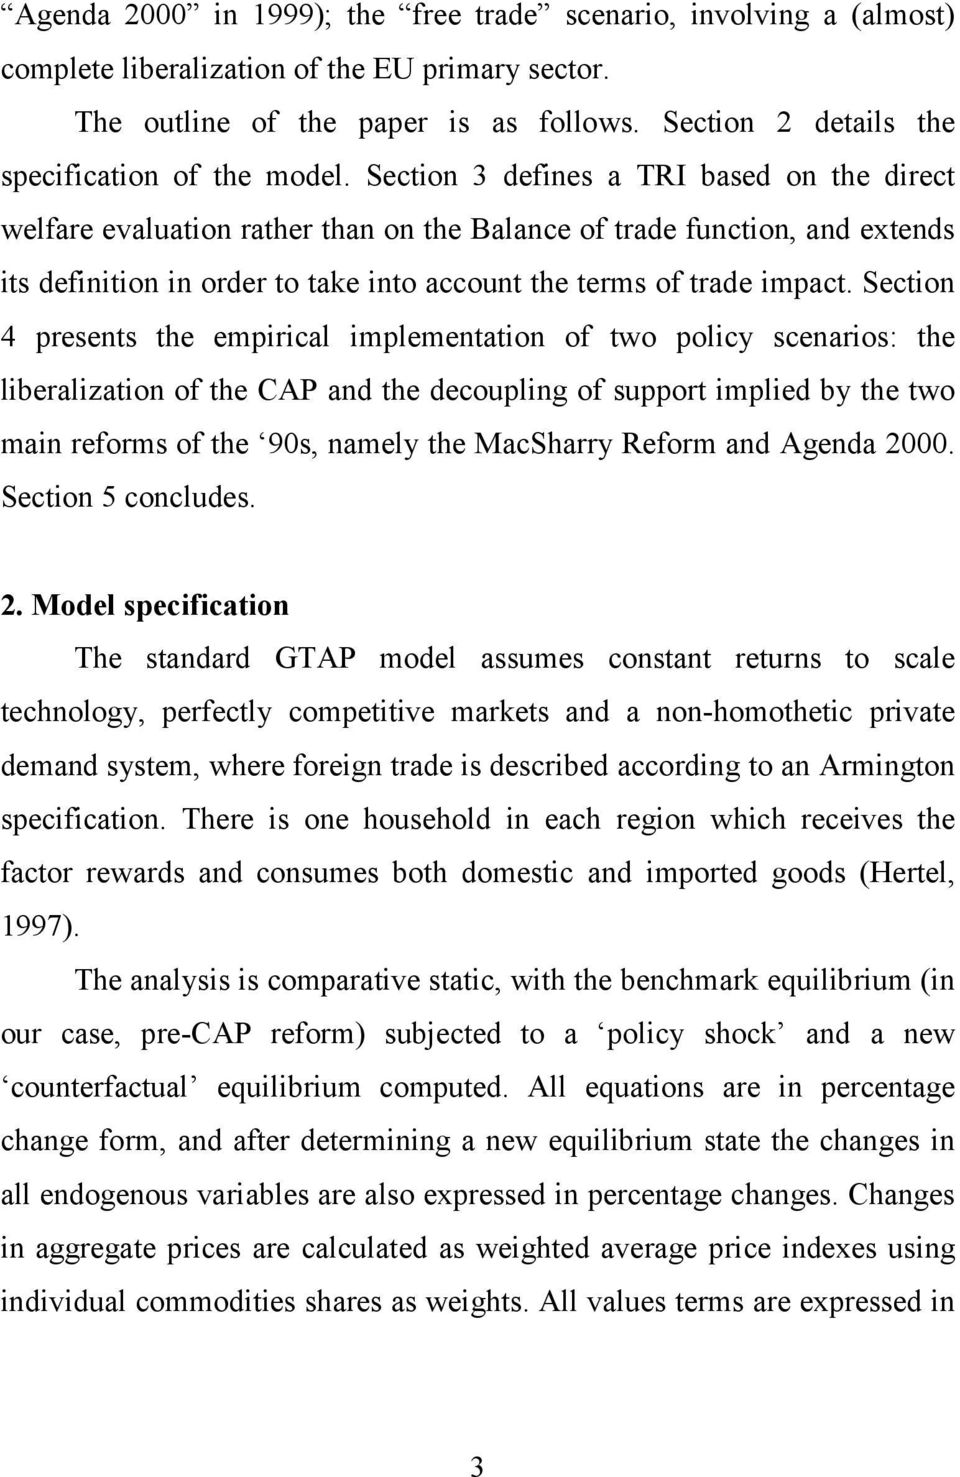 Section 3 defines a TRI based on the direct welfare evaluation rather than on the Balance of trade function, and extends its definition in order to take into account the terms of trade impact.